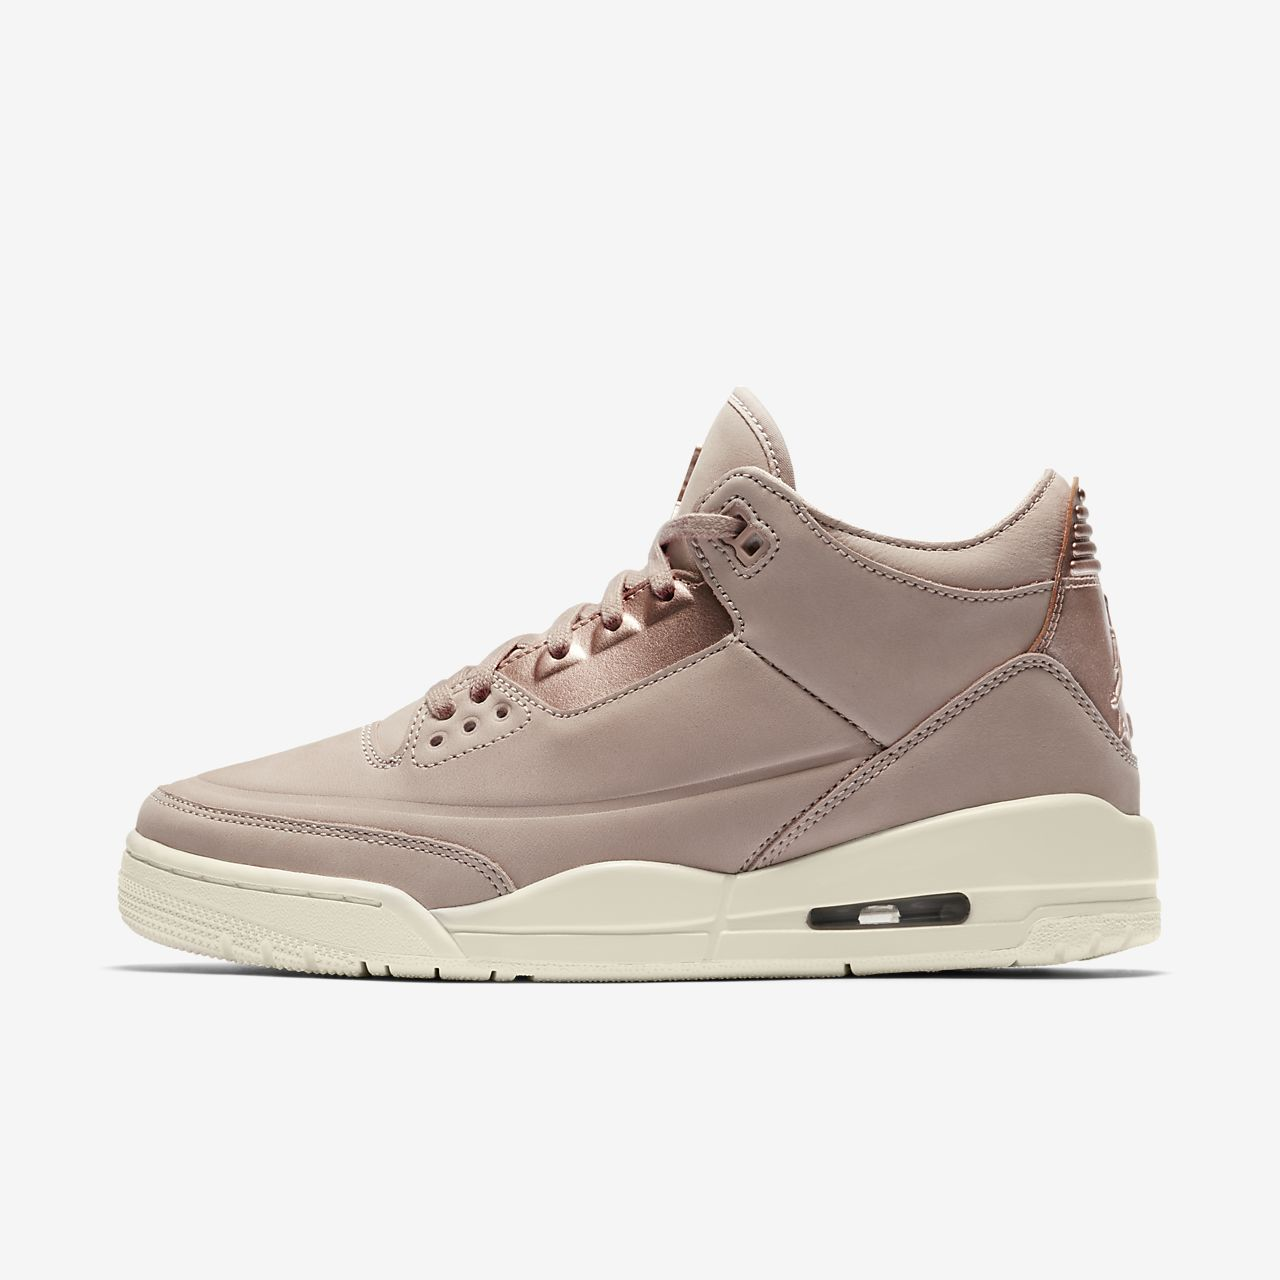 new photos 5dbf6 d32fa Air Jordan 3 Retro SE Women's Shoe